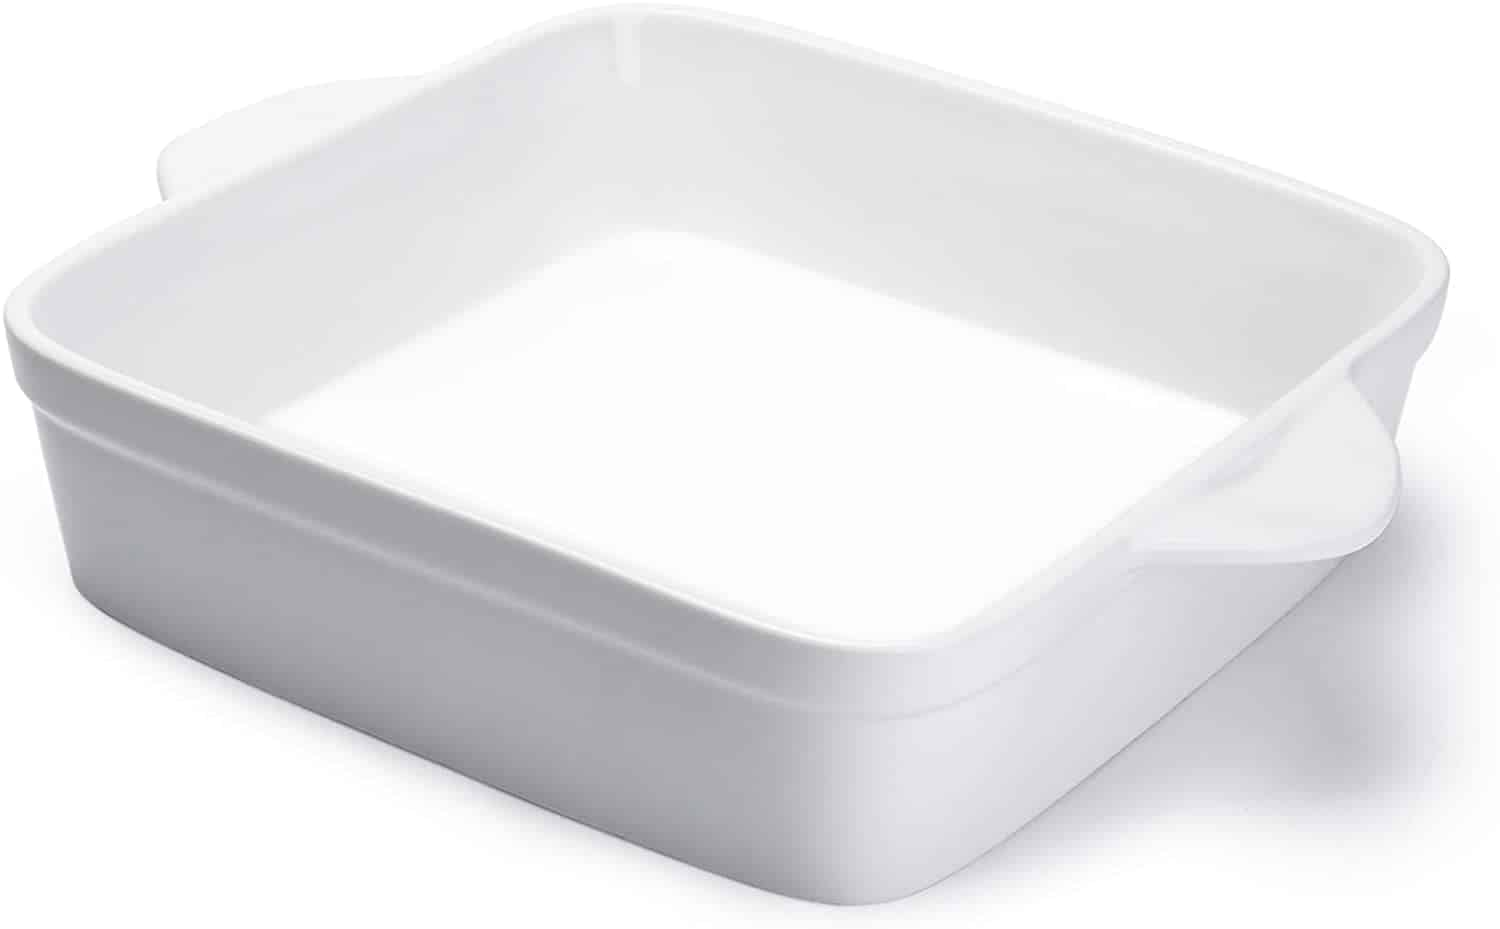 Image of 9x9 white baking dish